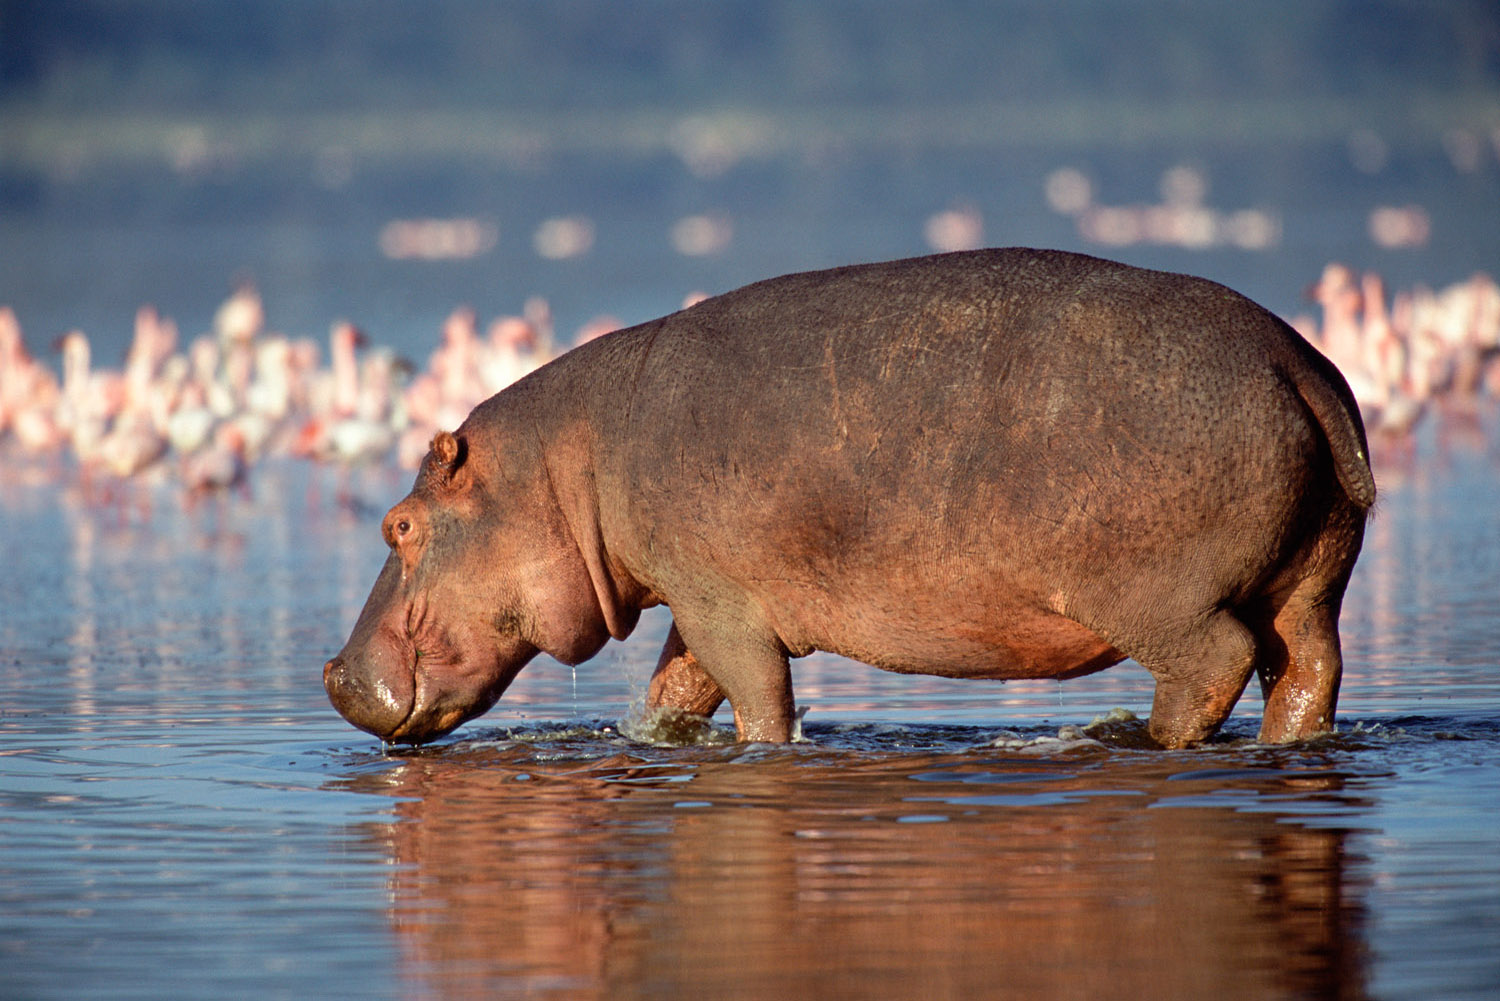 Hippo in Lake Nakuru, Lake Nakuru National Park, Kenya